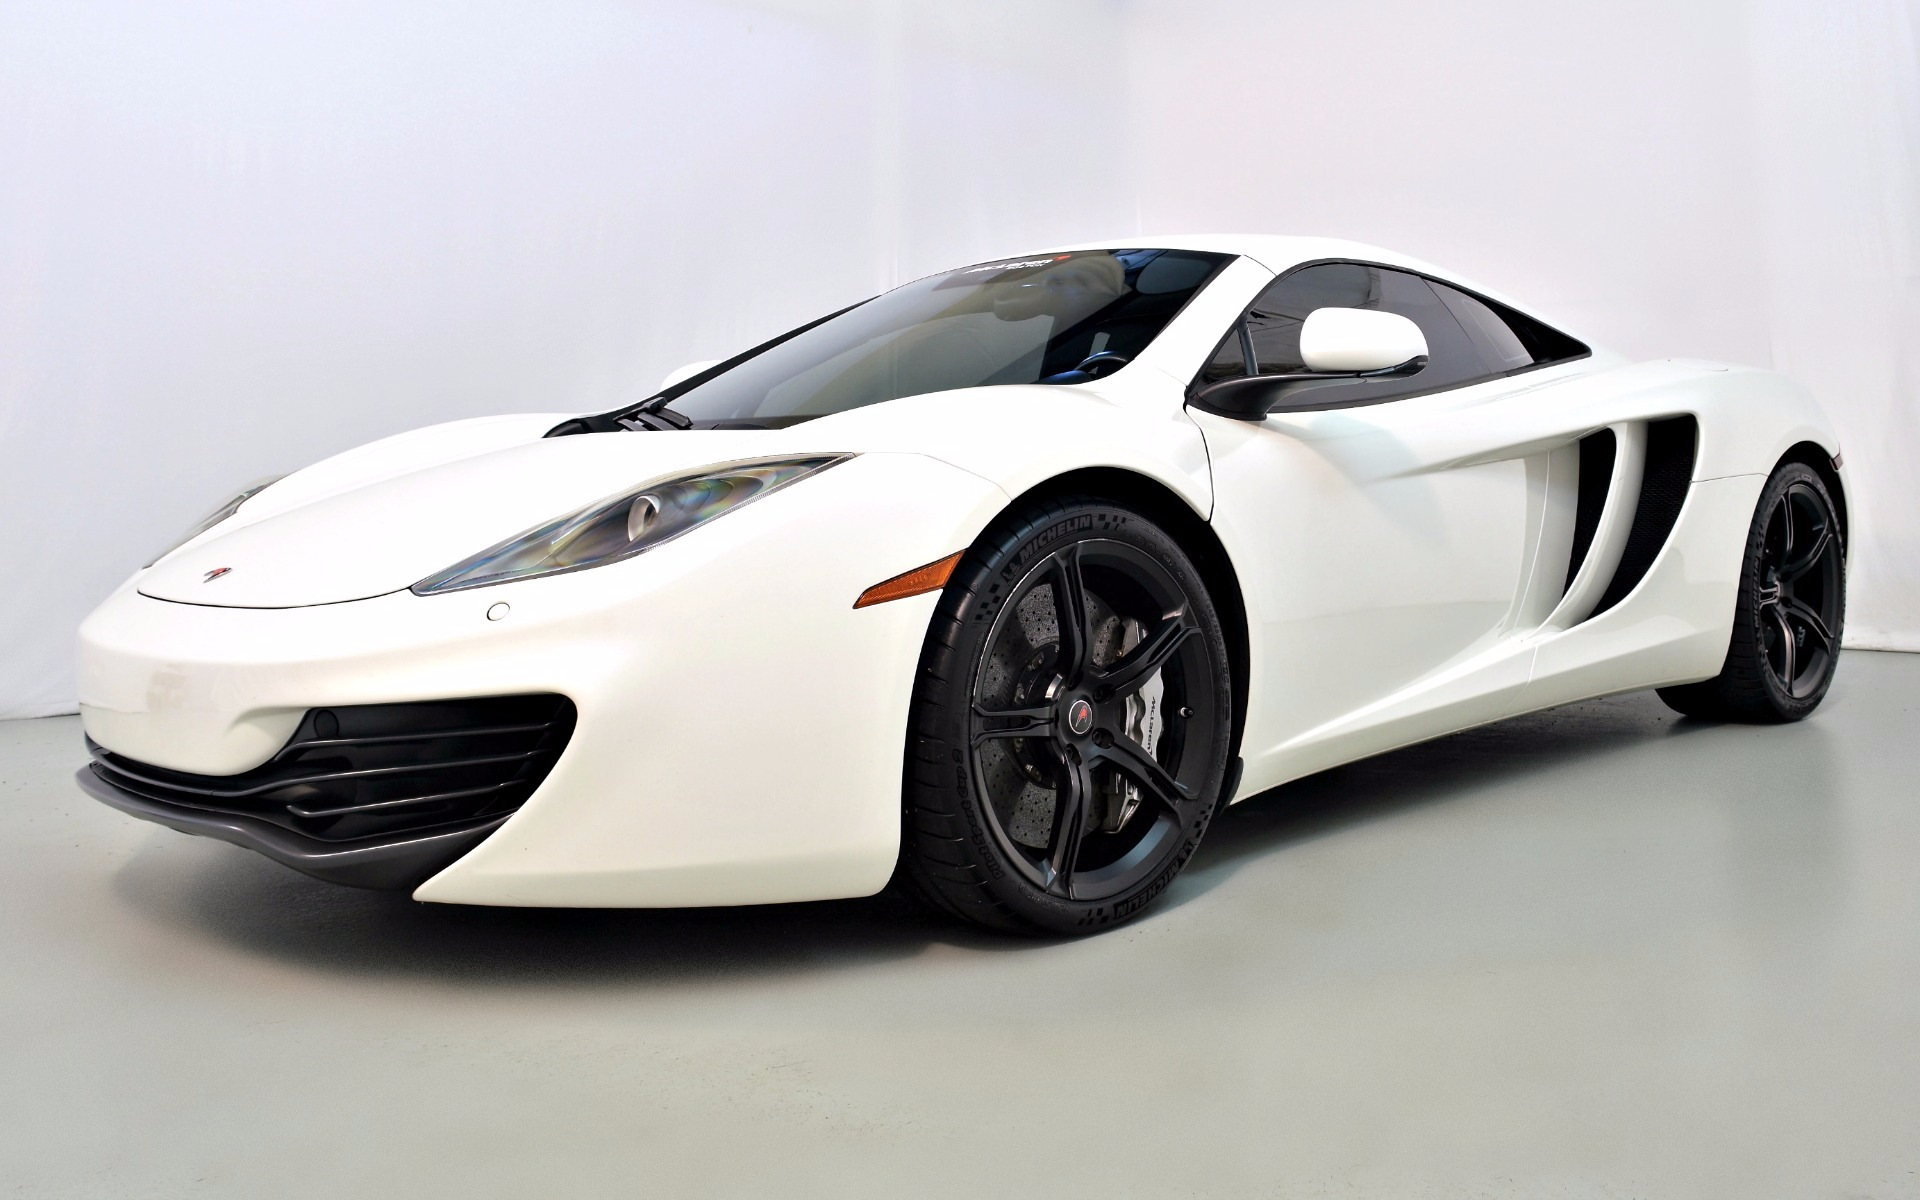 2012 mclaren mp4 12c for sale in norwell ma 000859 mclaren boston. Black Bedroom Furniture Sets. Home Design Ideas